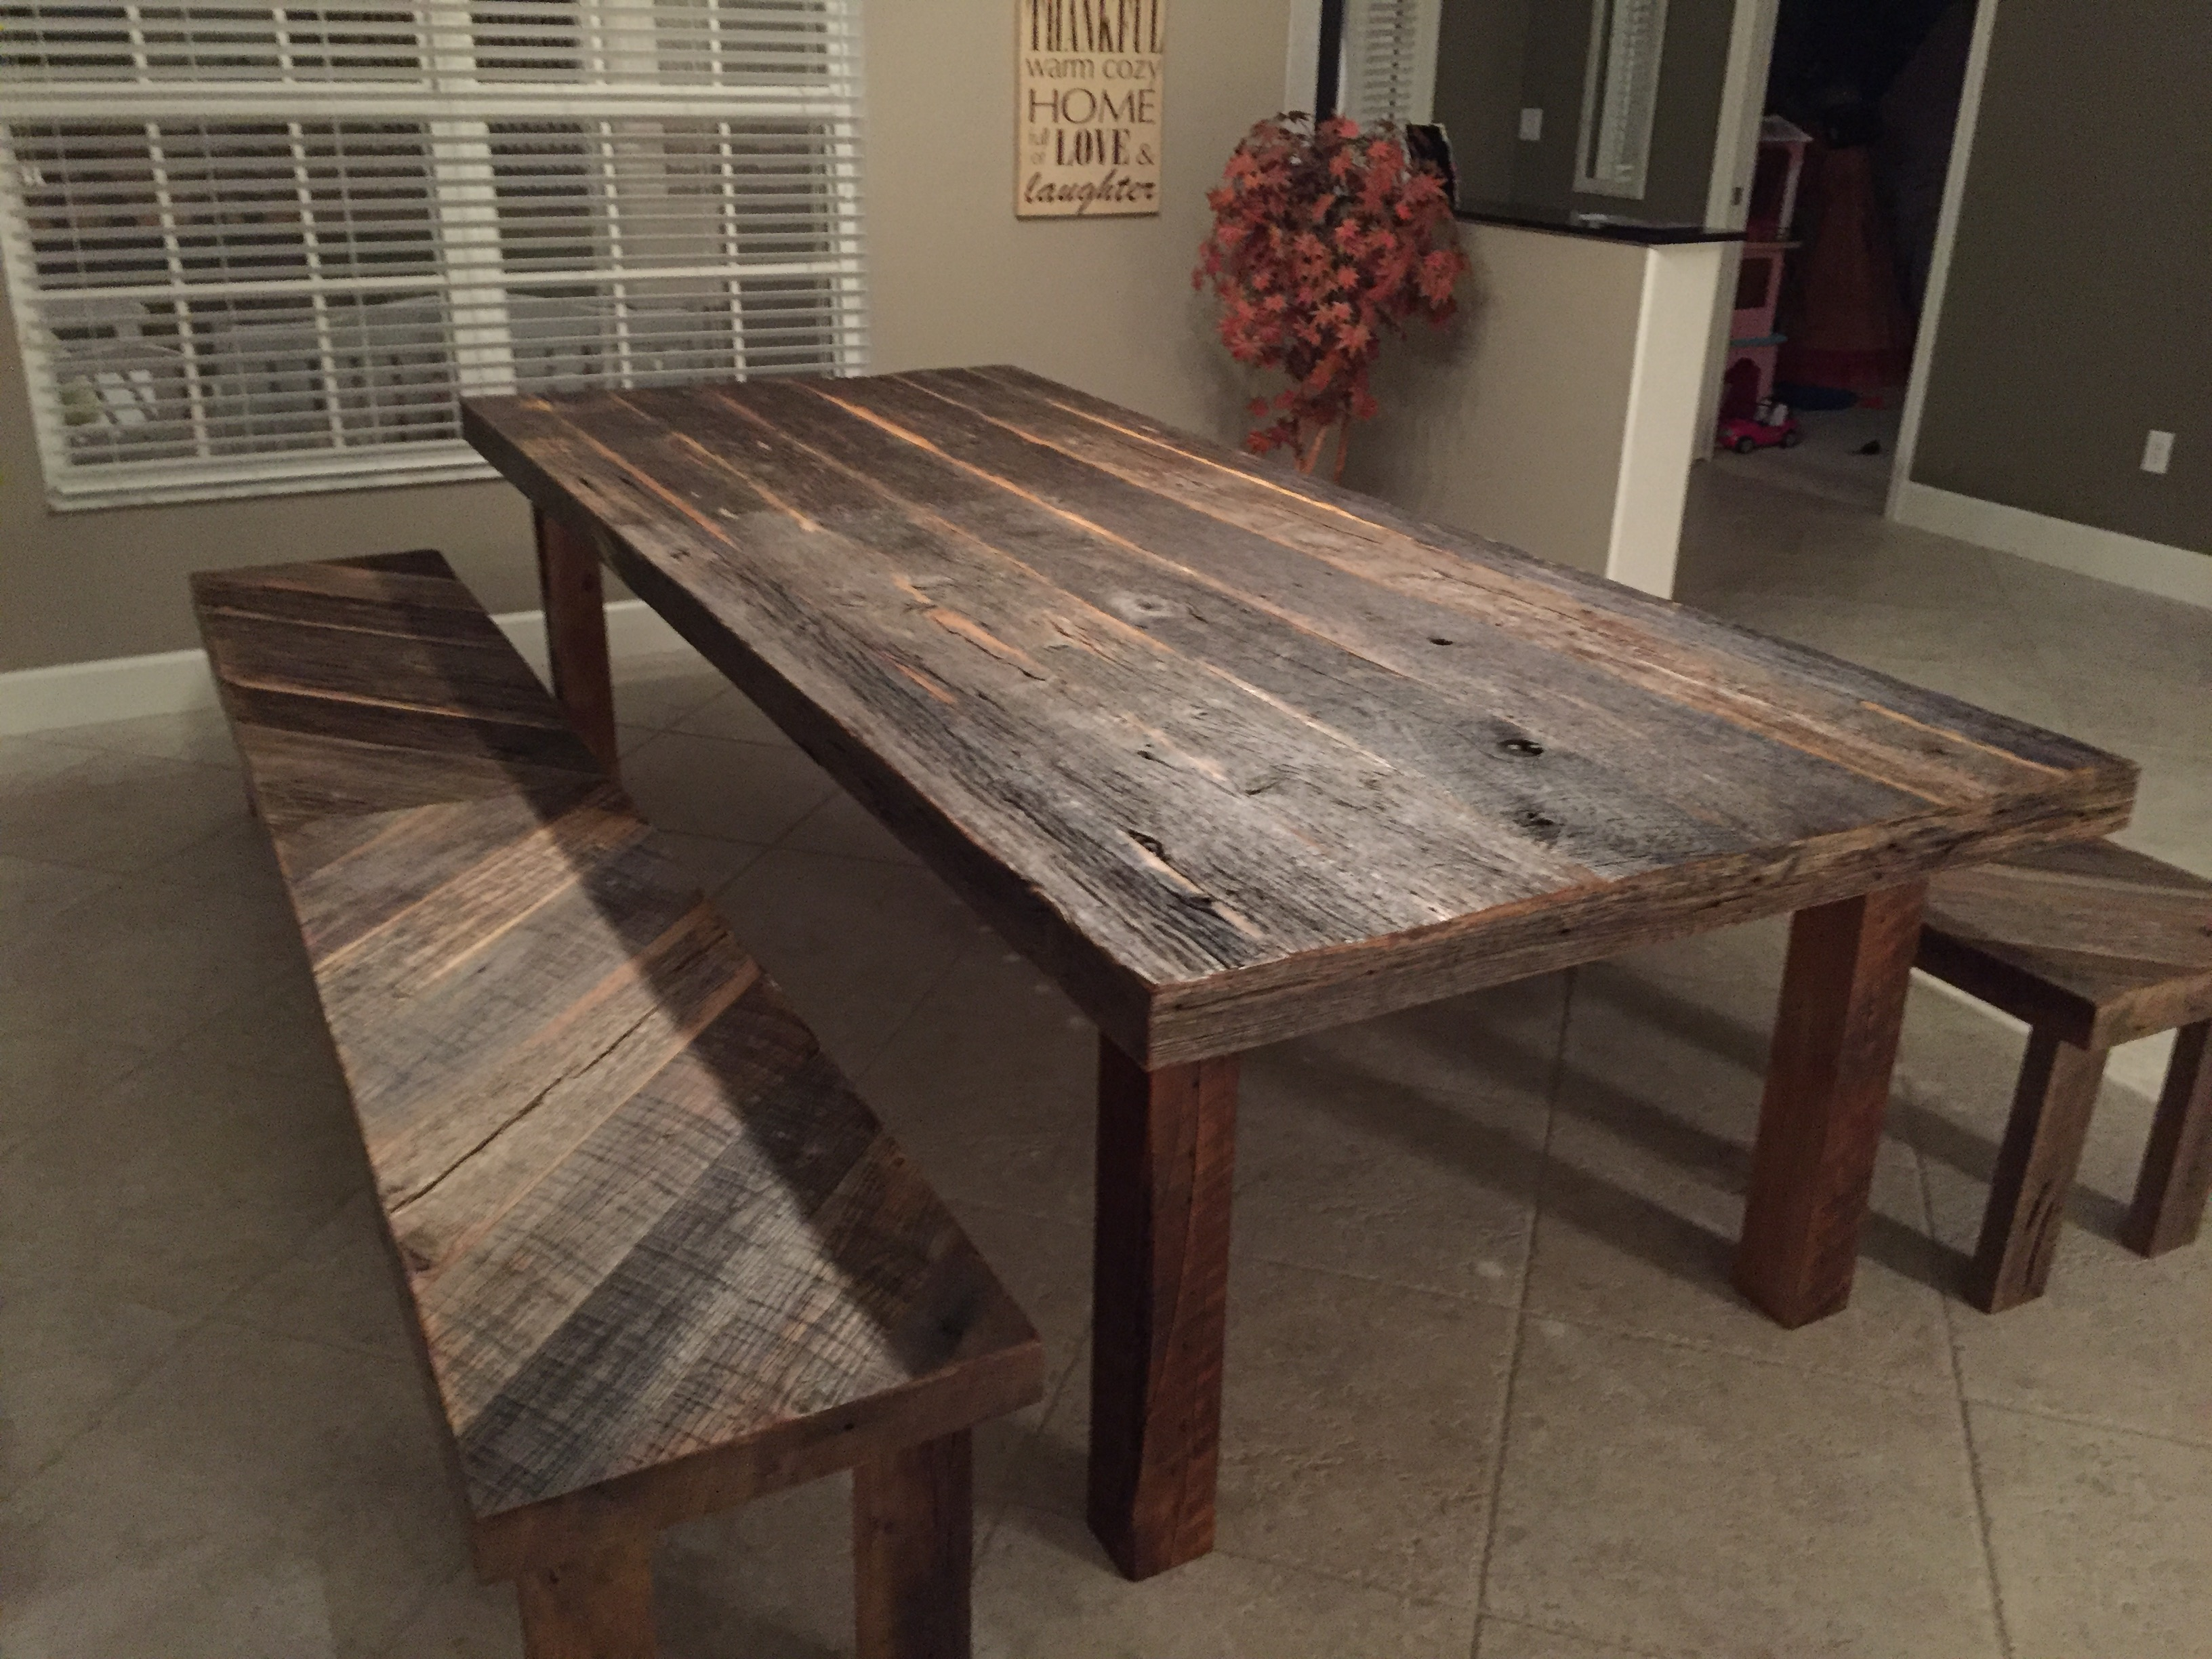 Stacy39s Rustic Reclaimed Wood Dining Table With Matching